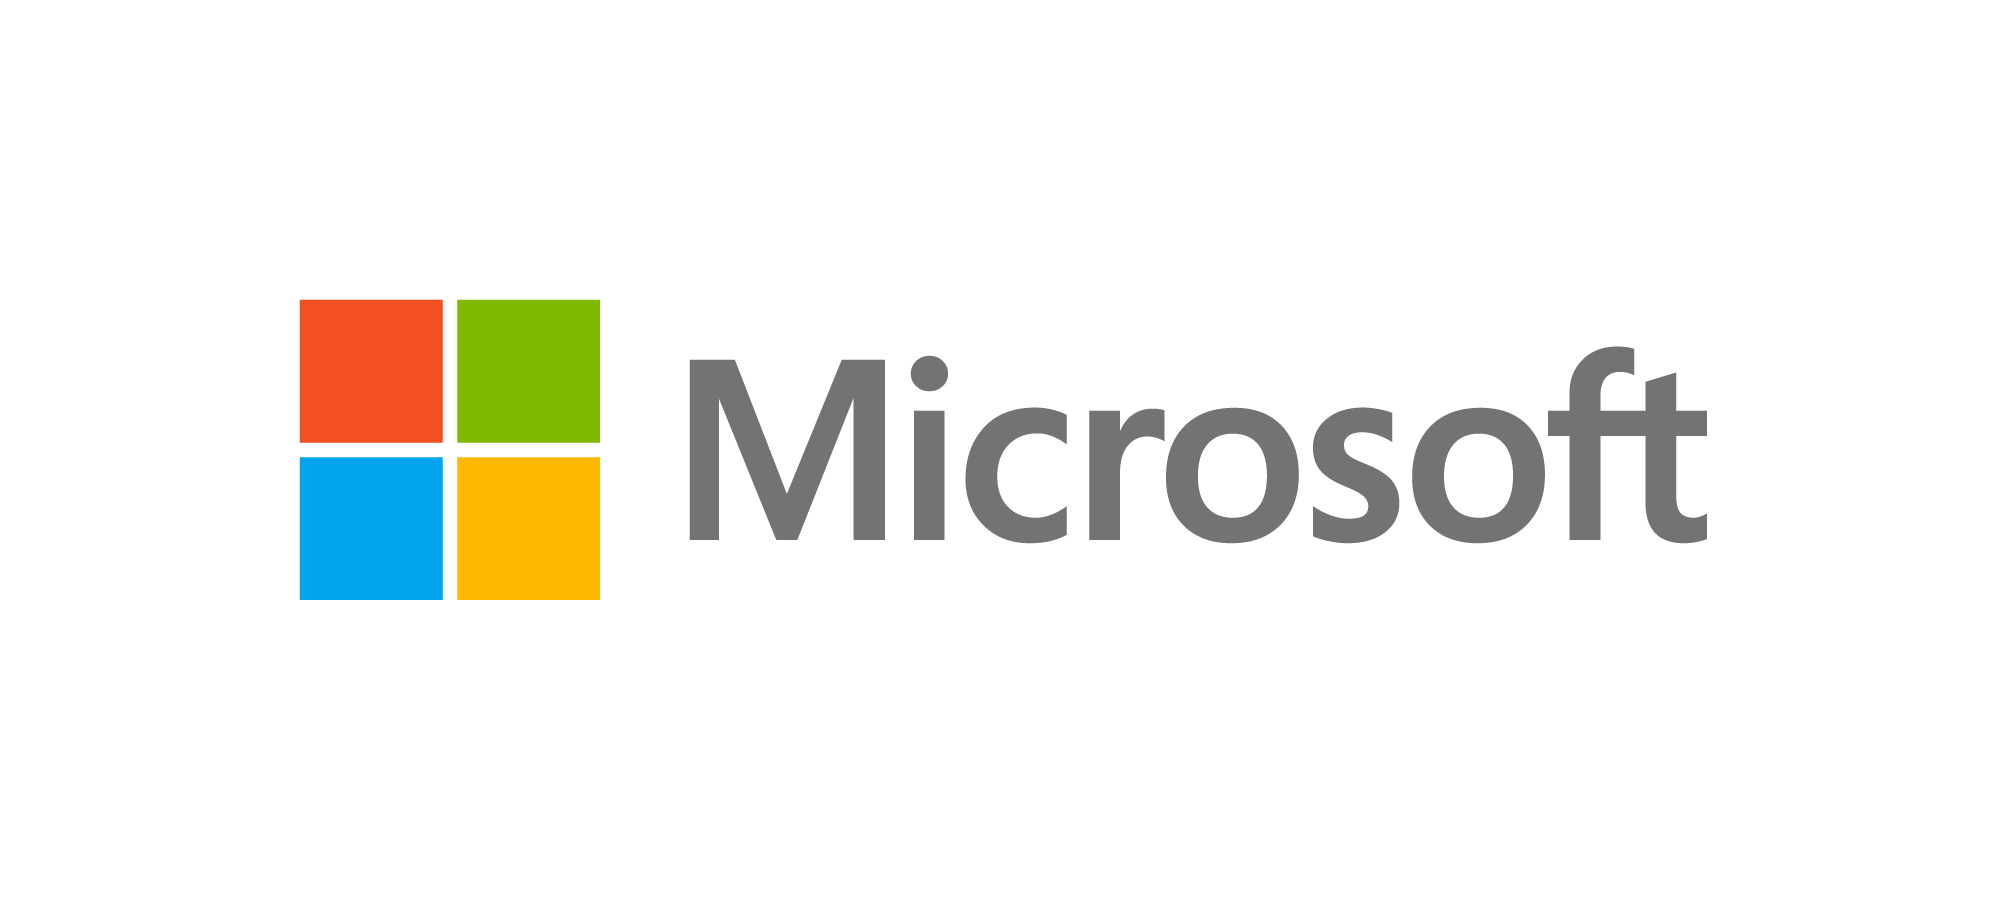 Microsoft integration with TriNet applications